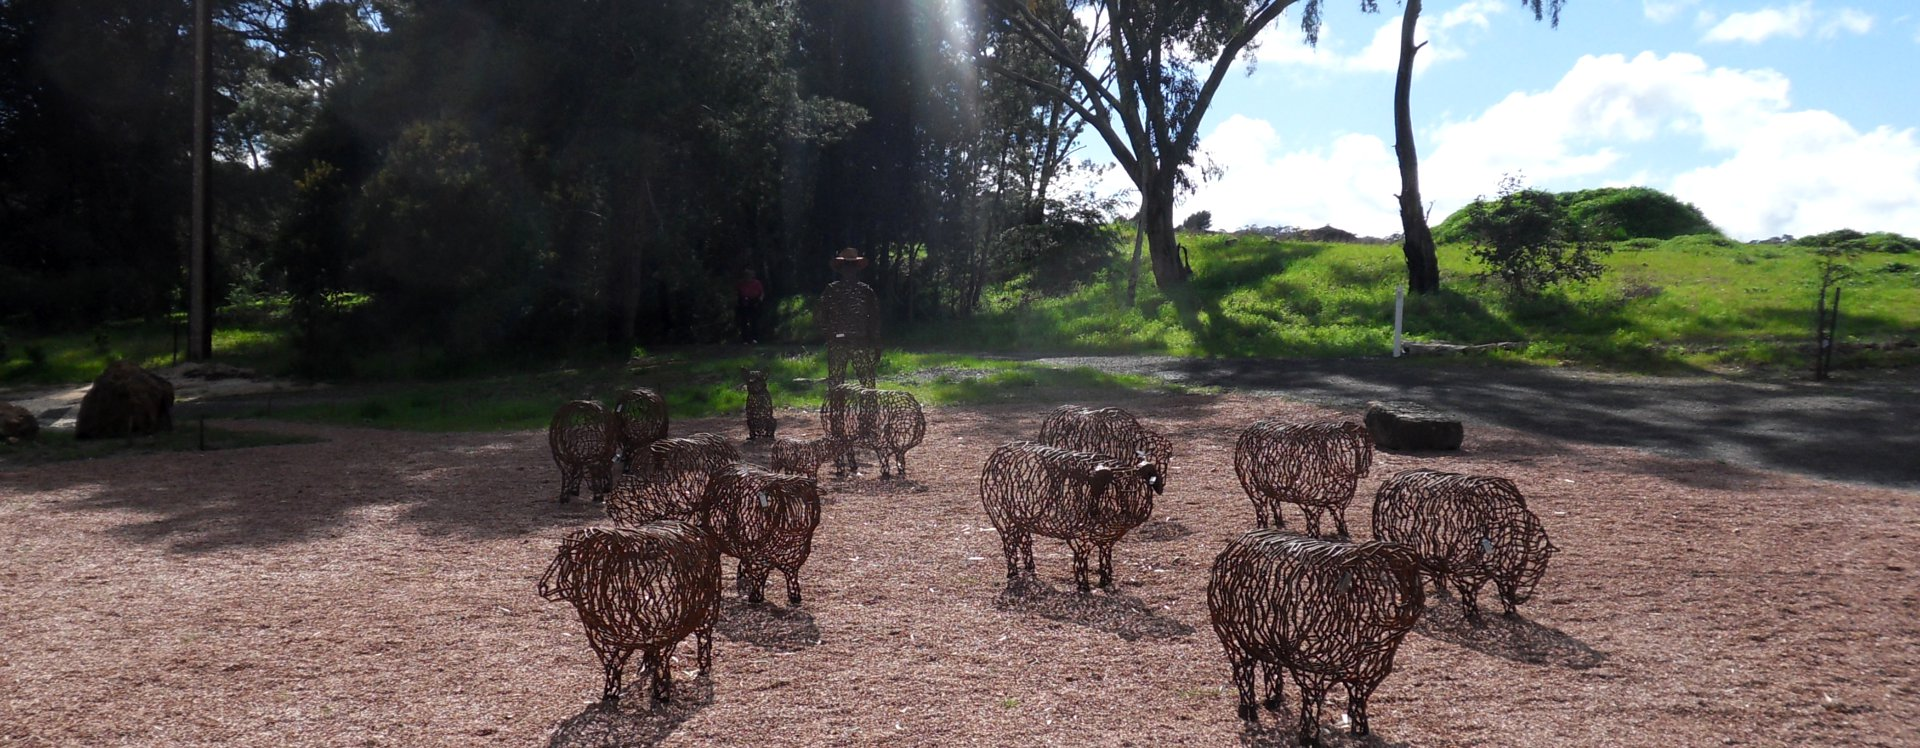 clare-valley-experiences-home-sheep-sculpture